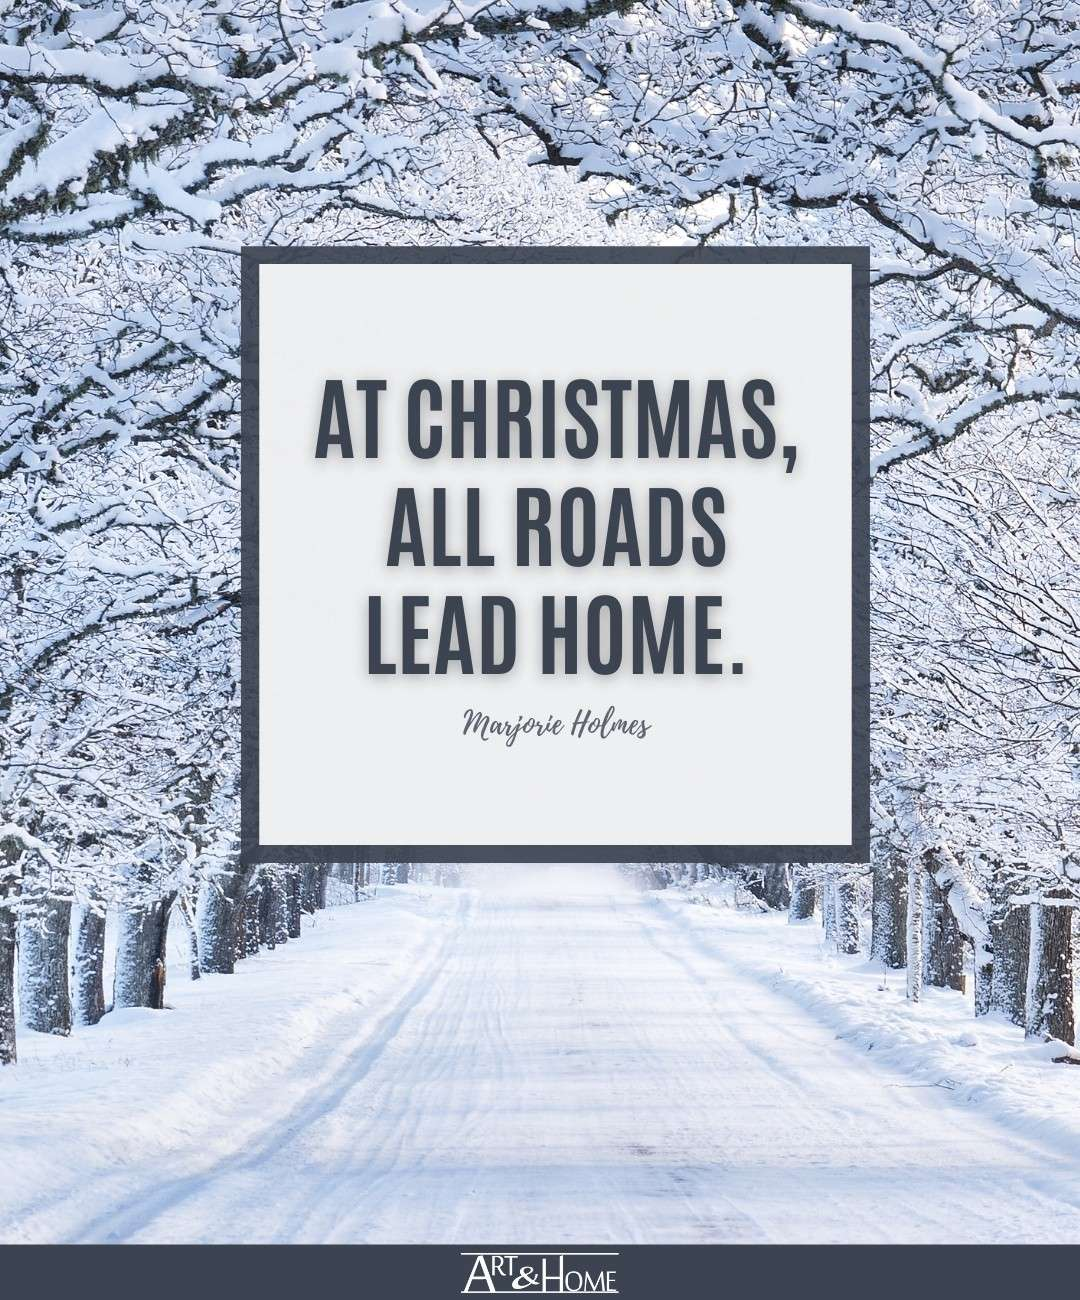 At Christmas, all roads lead home. Marjorie Holmes quote.